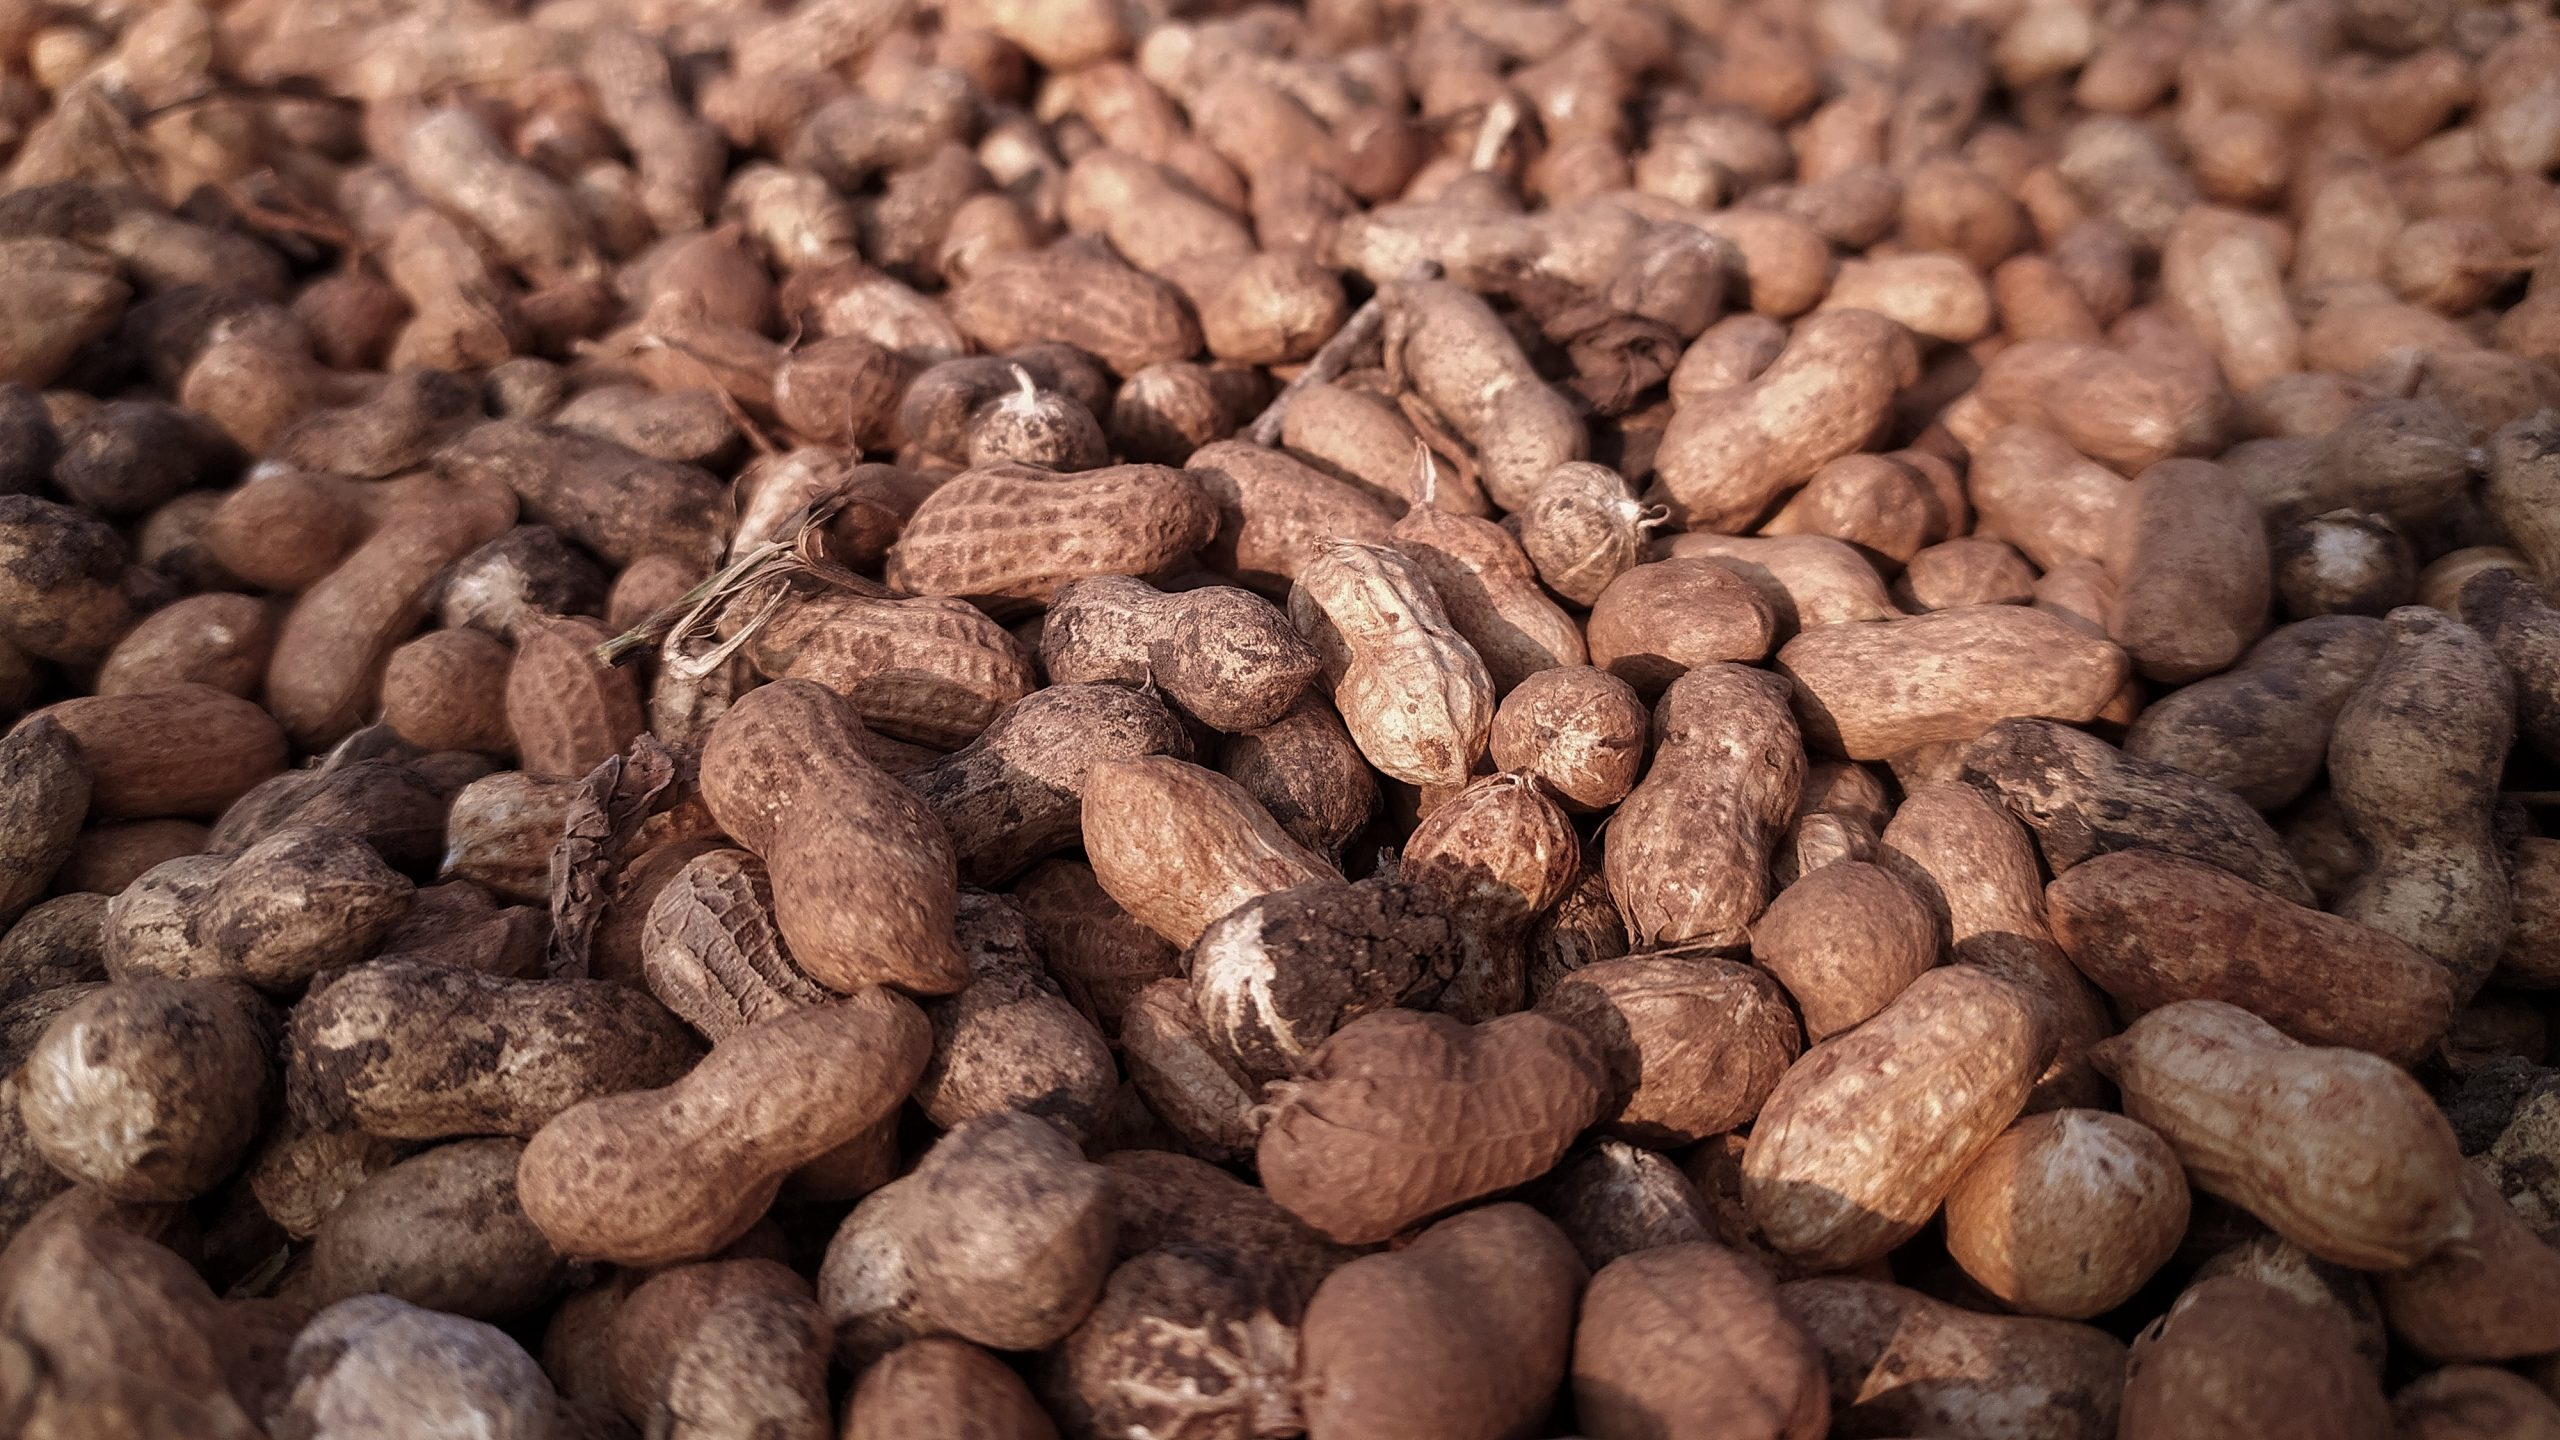 A pile of groundnuts